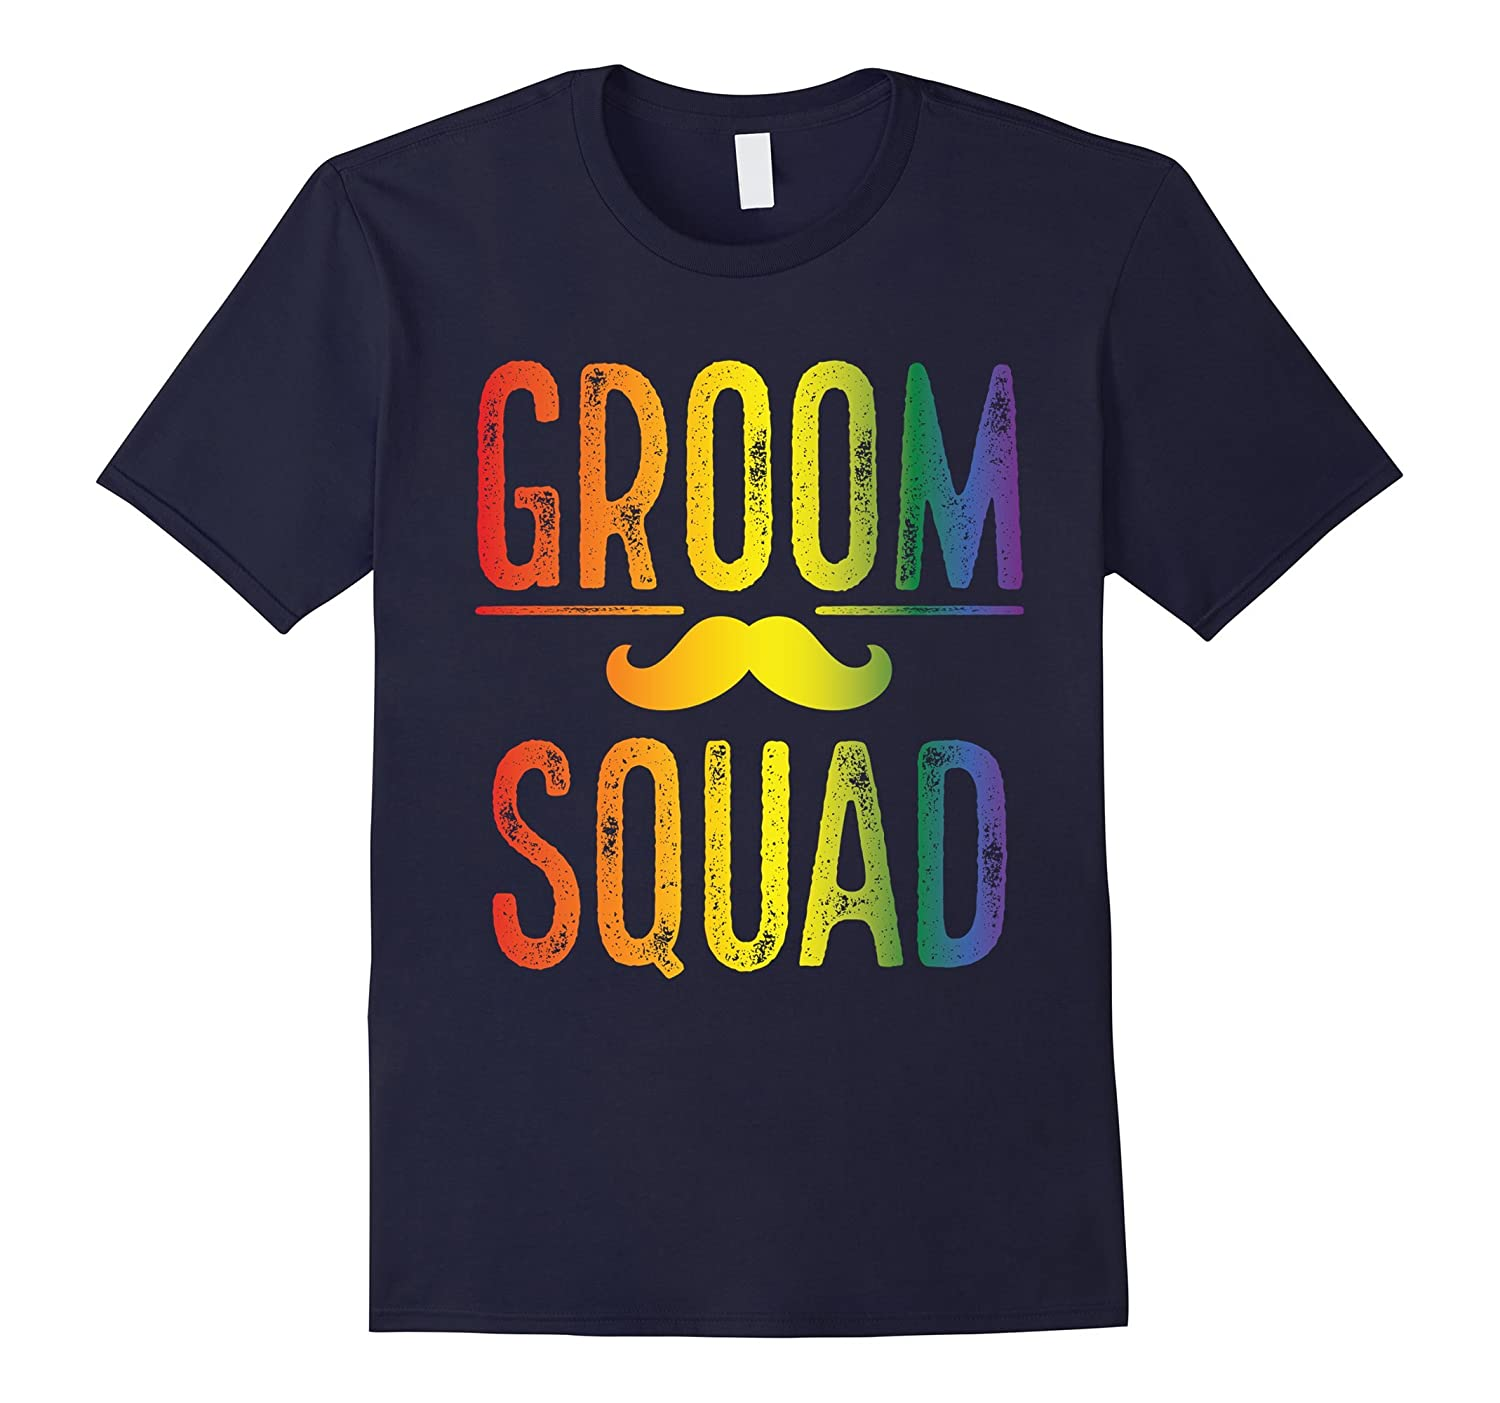 Mens Bachelor Party Shirt Gay Pride Groom Squad Moustache-Vaci